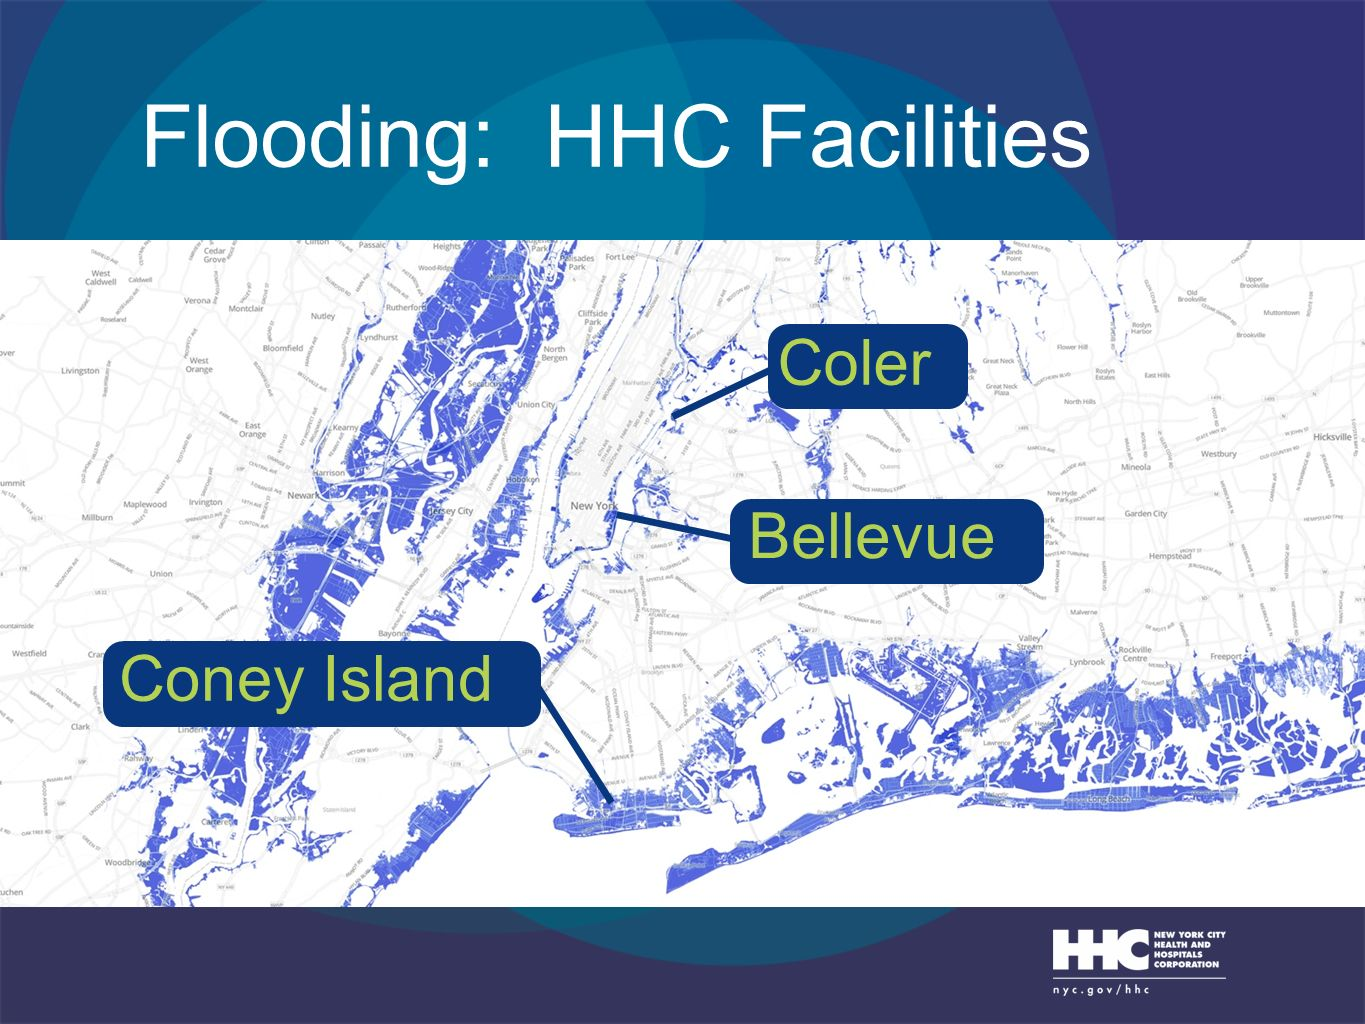 Flooding: HHC Facilities